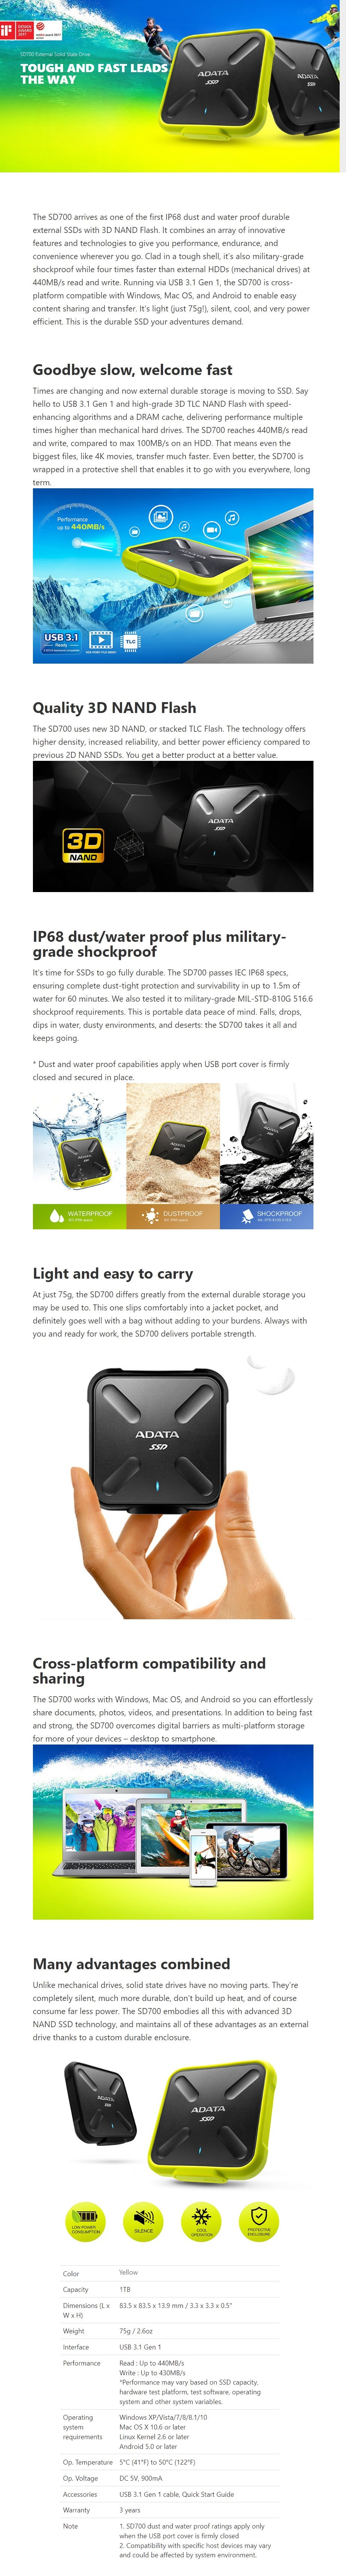 Adata SD700 1TB USB 3.1 Portable External Rugged SSD Hard Drive - Yellow - Overview 1